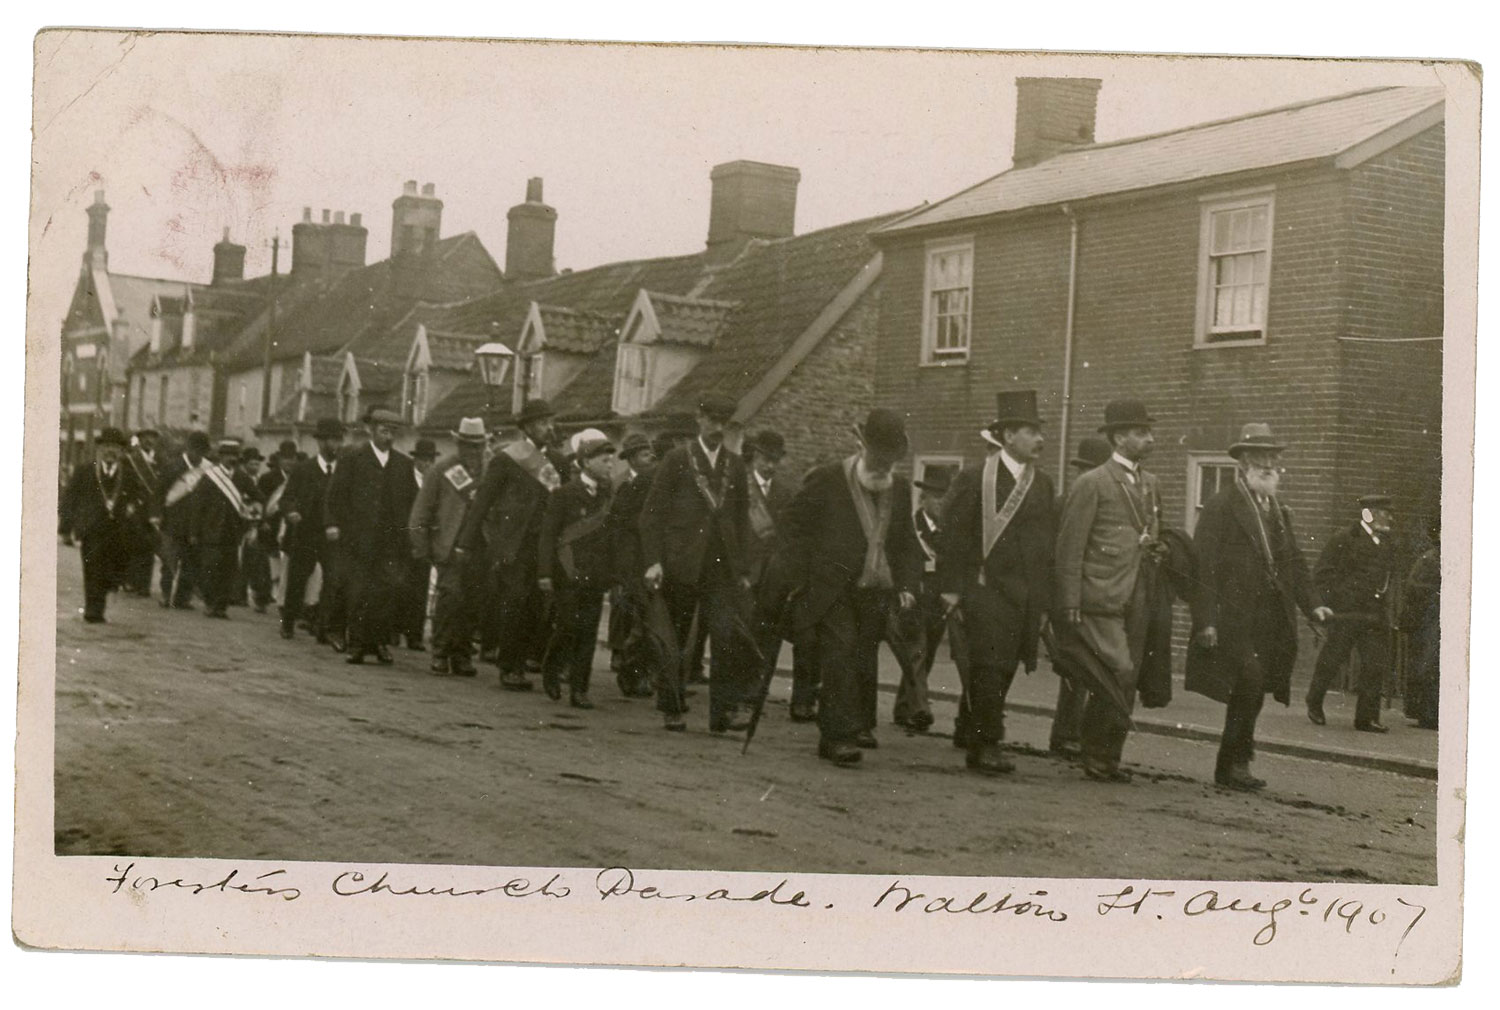 Foresters Church Parade, Walton Street Aug 1907. I suspect Jim Witter is in this photo.